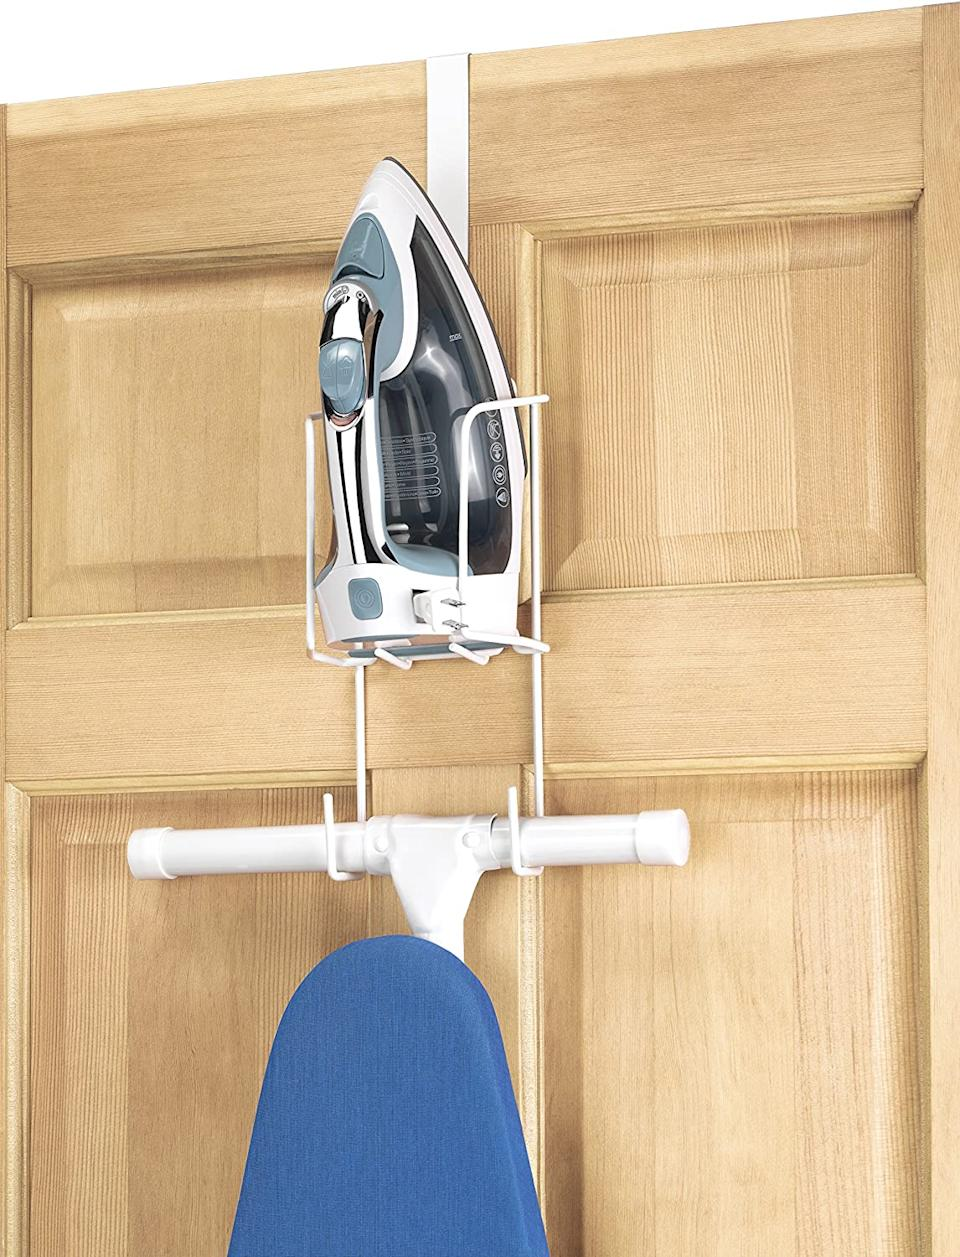 What a cool way to store your iron! (Photo: Amazon)